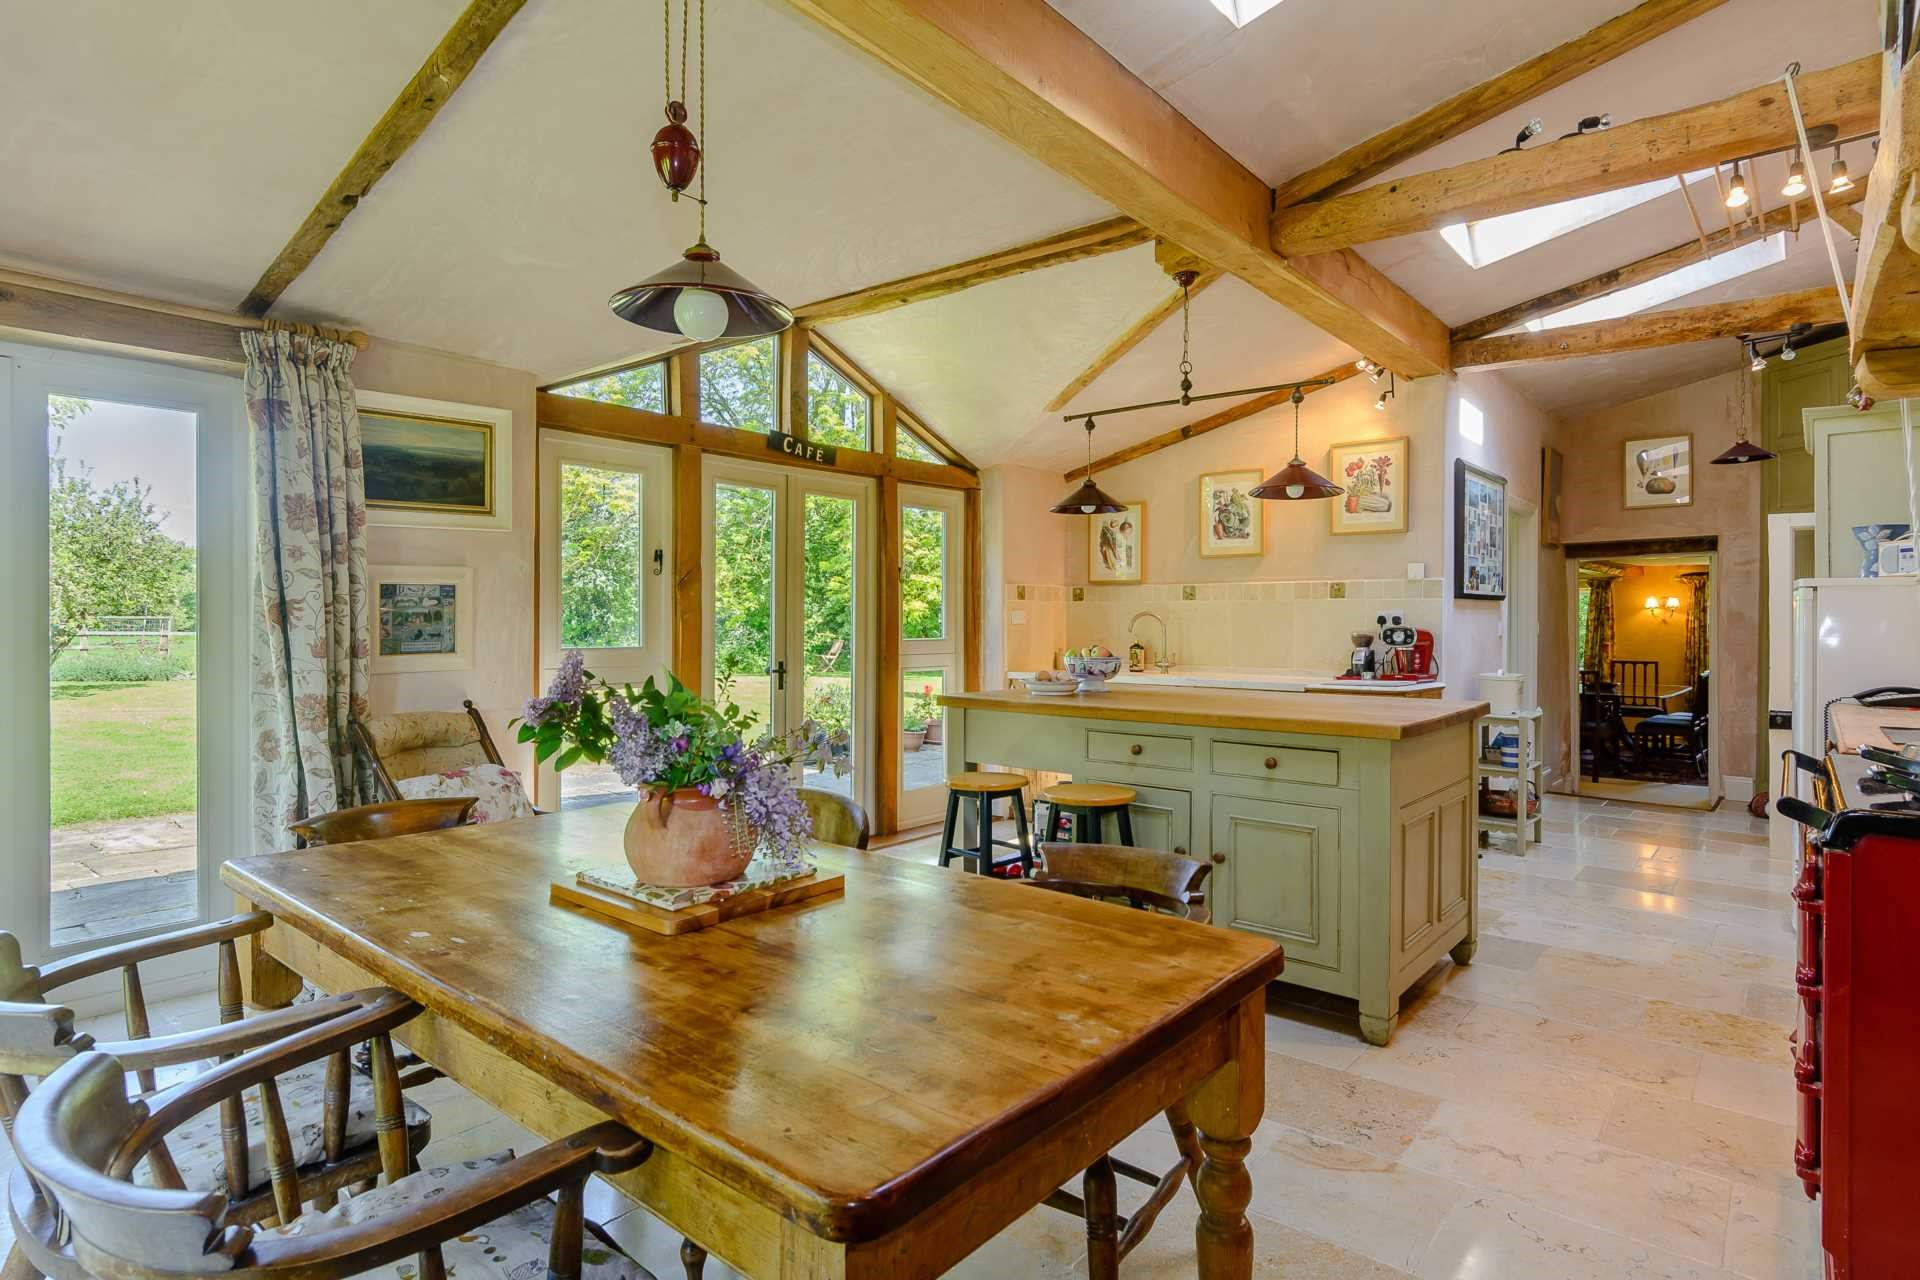 open plan kitchen breakfast family room traditional interiors exposed beams farmhouse